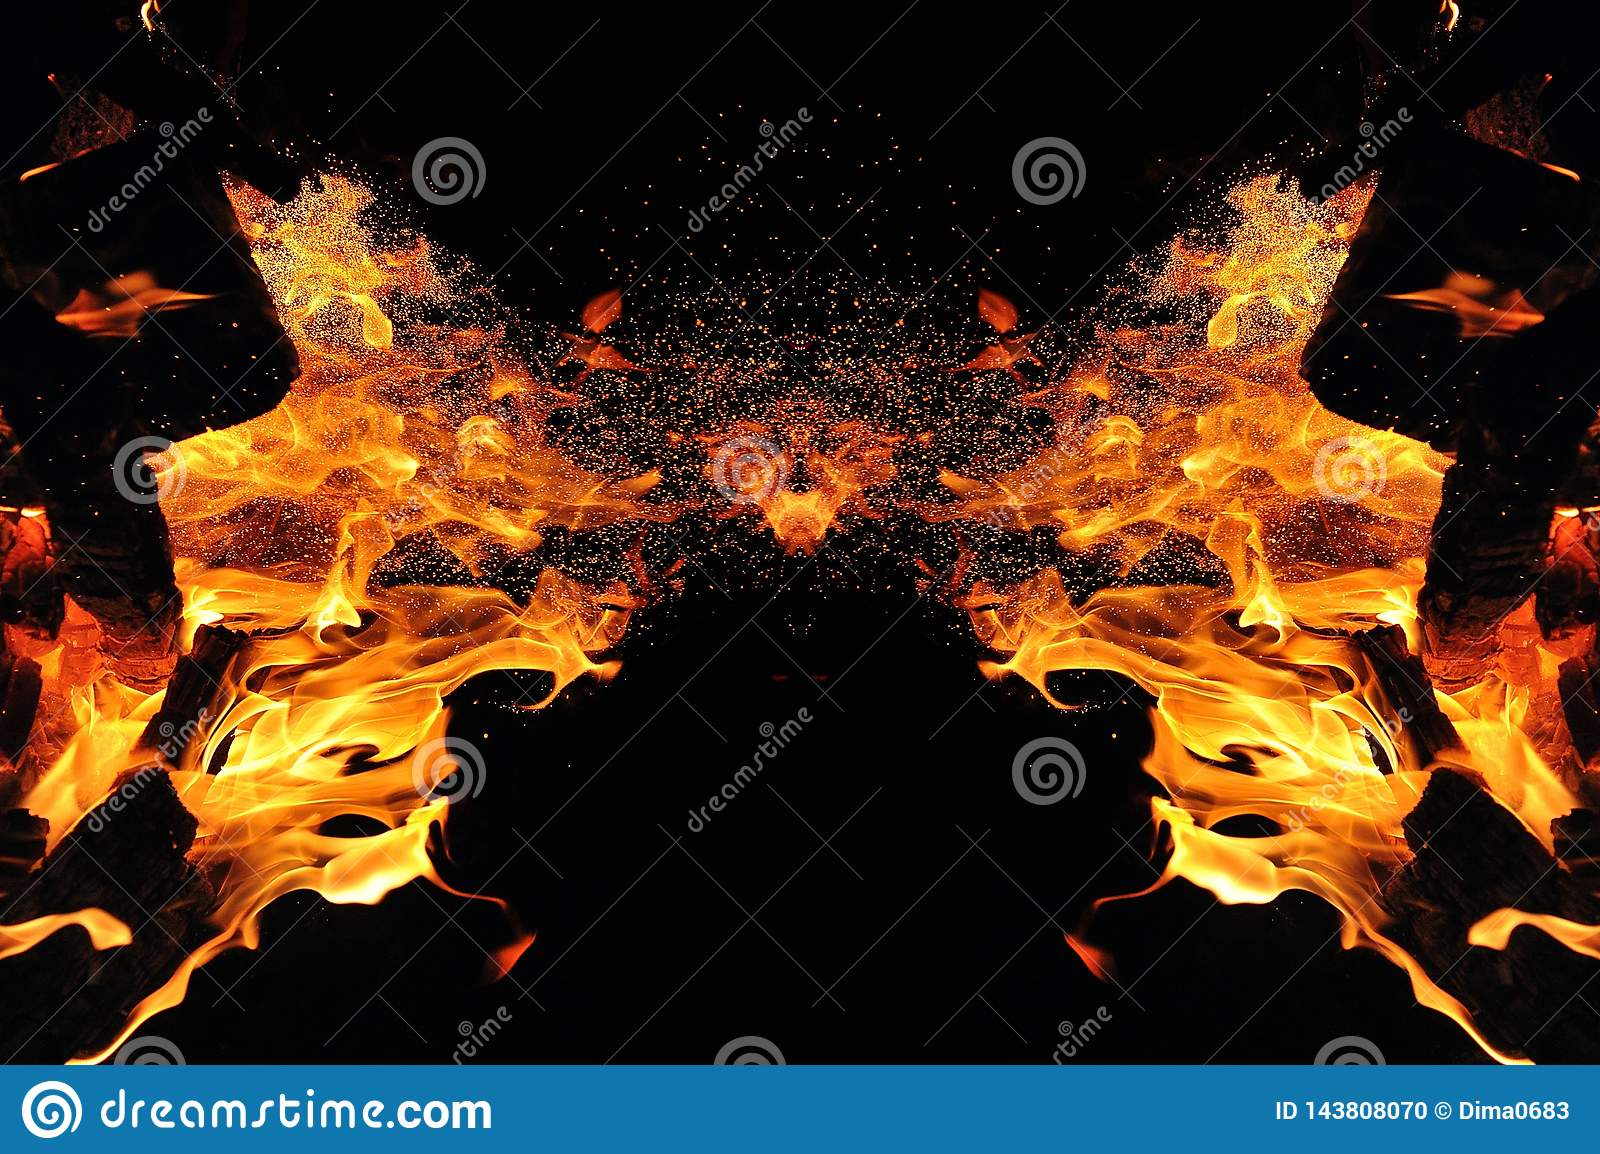 Abstraction, burning fire with sparks. Mystical type of butterfly or monster. Horizontal reflection